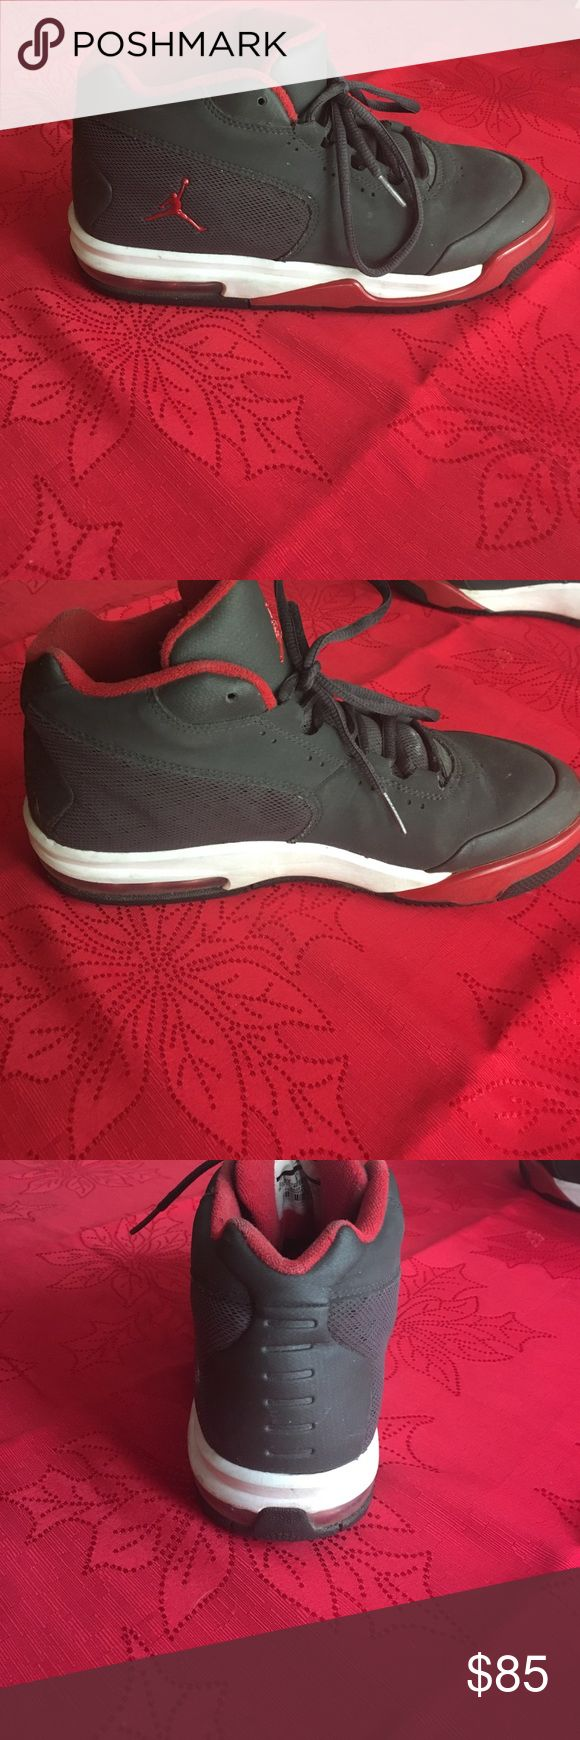 Jordan shoes These Jordan's are size US:  6.5Y,  UK: 6, appropriate for guys  and girls, in good shape/condition, are clean,  and fit well (Price Negotiable) Jordan Shoes Sneakers